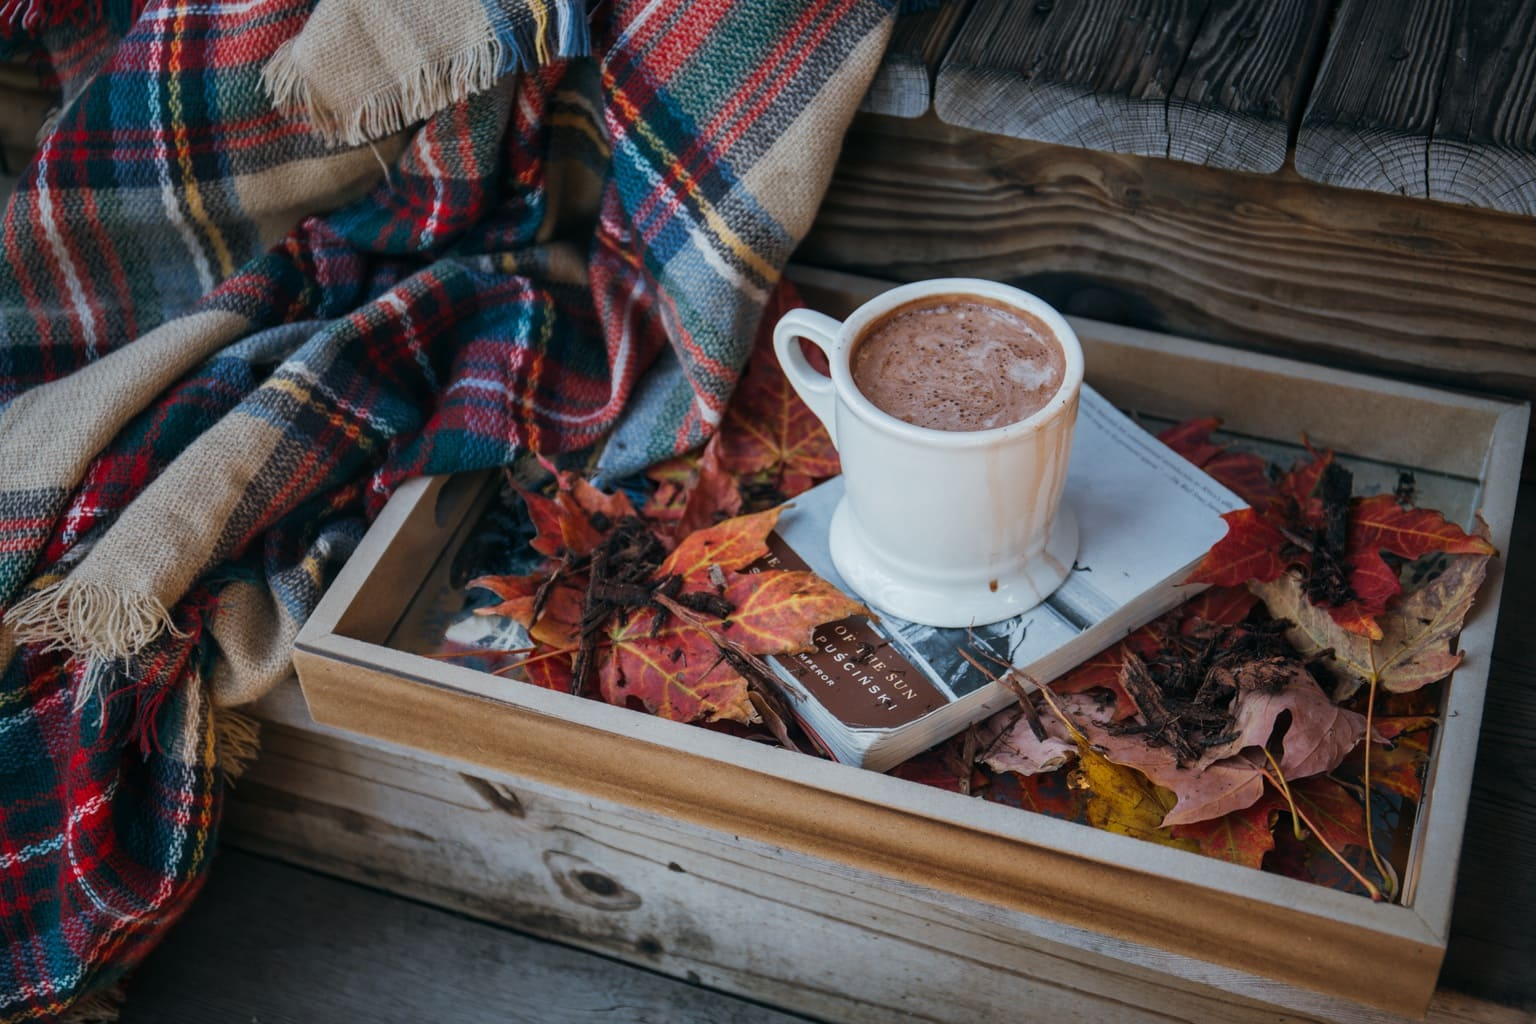 Hot chocolate on book with leaves and plaid blanket